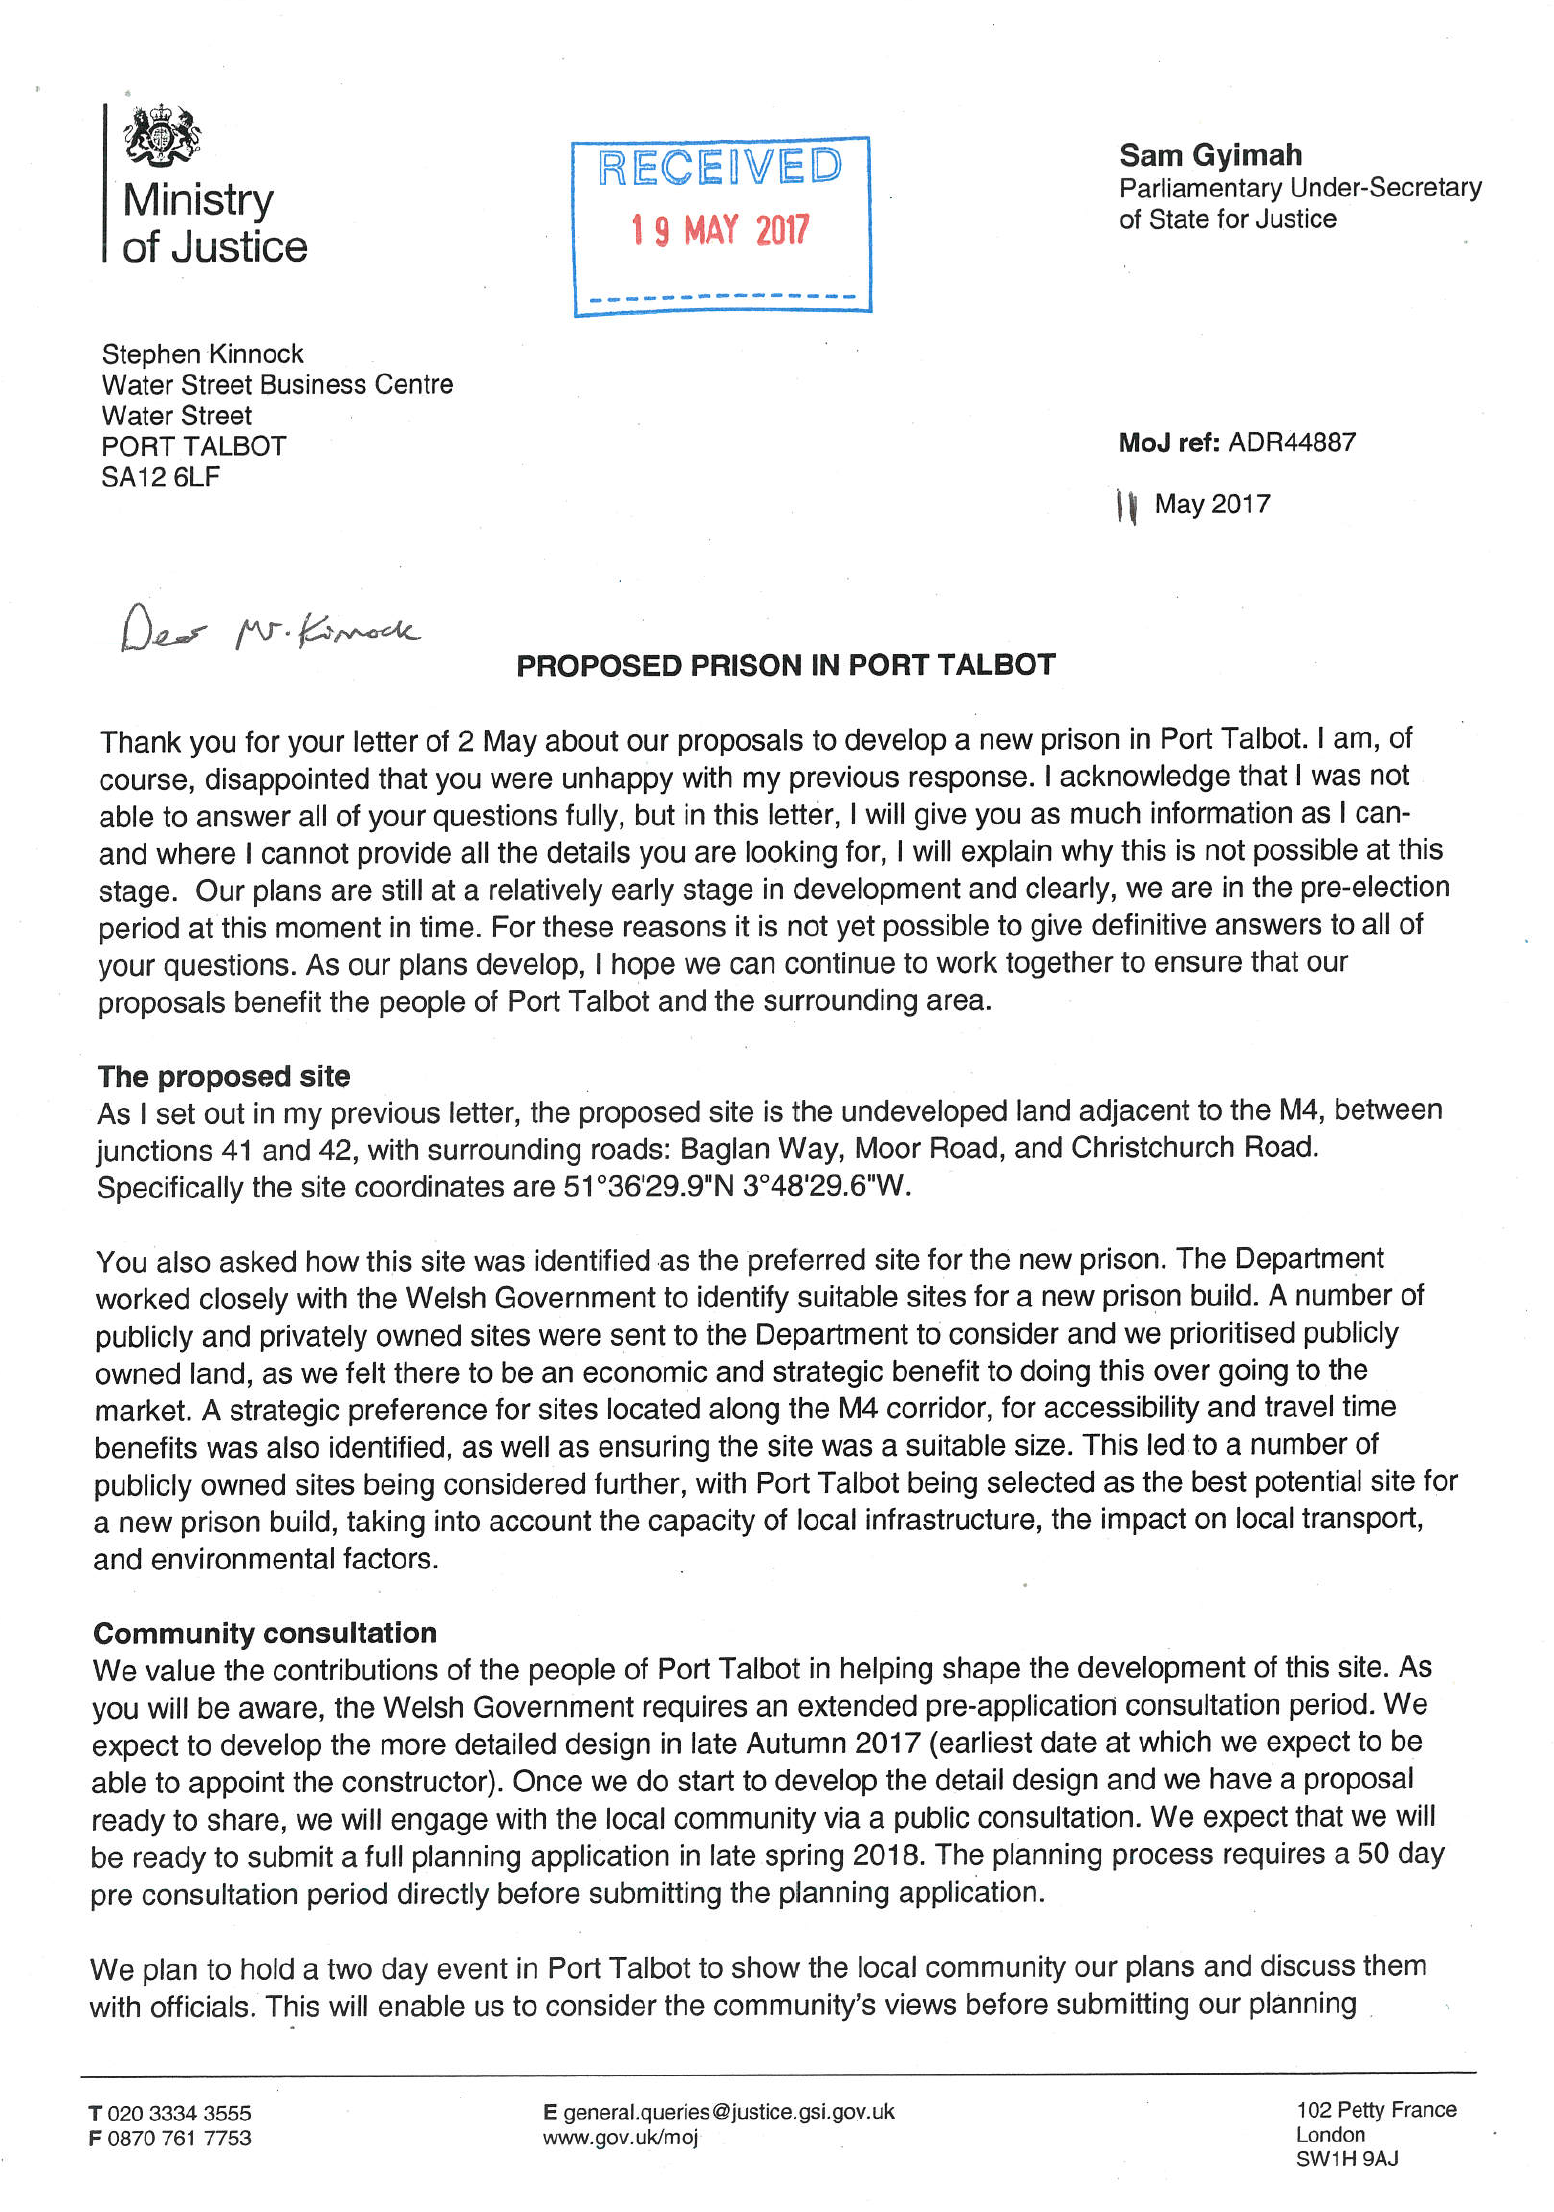 Sam_Gyimah_Letter_19052017_(1).png